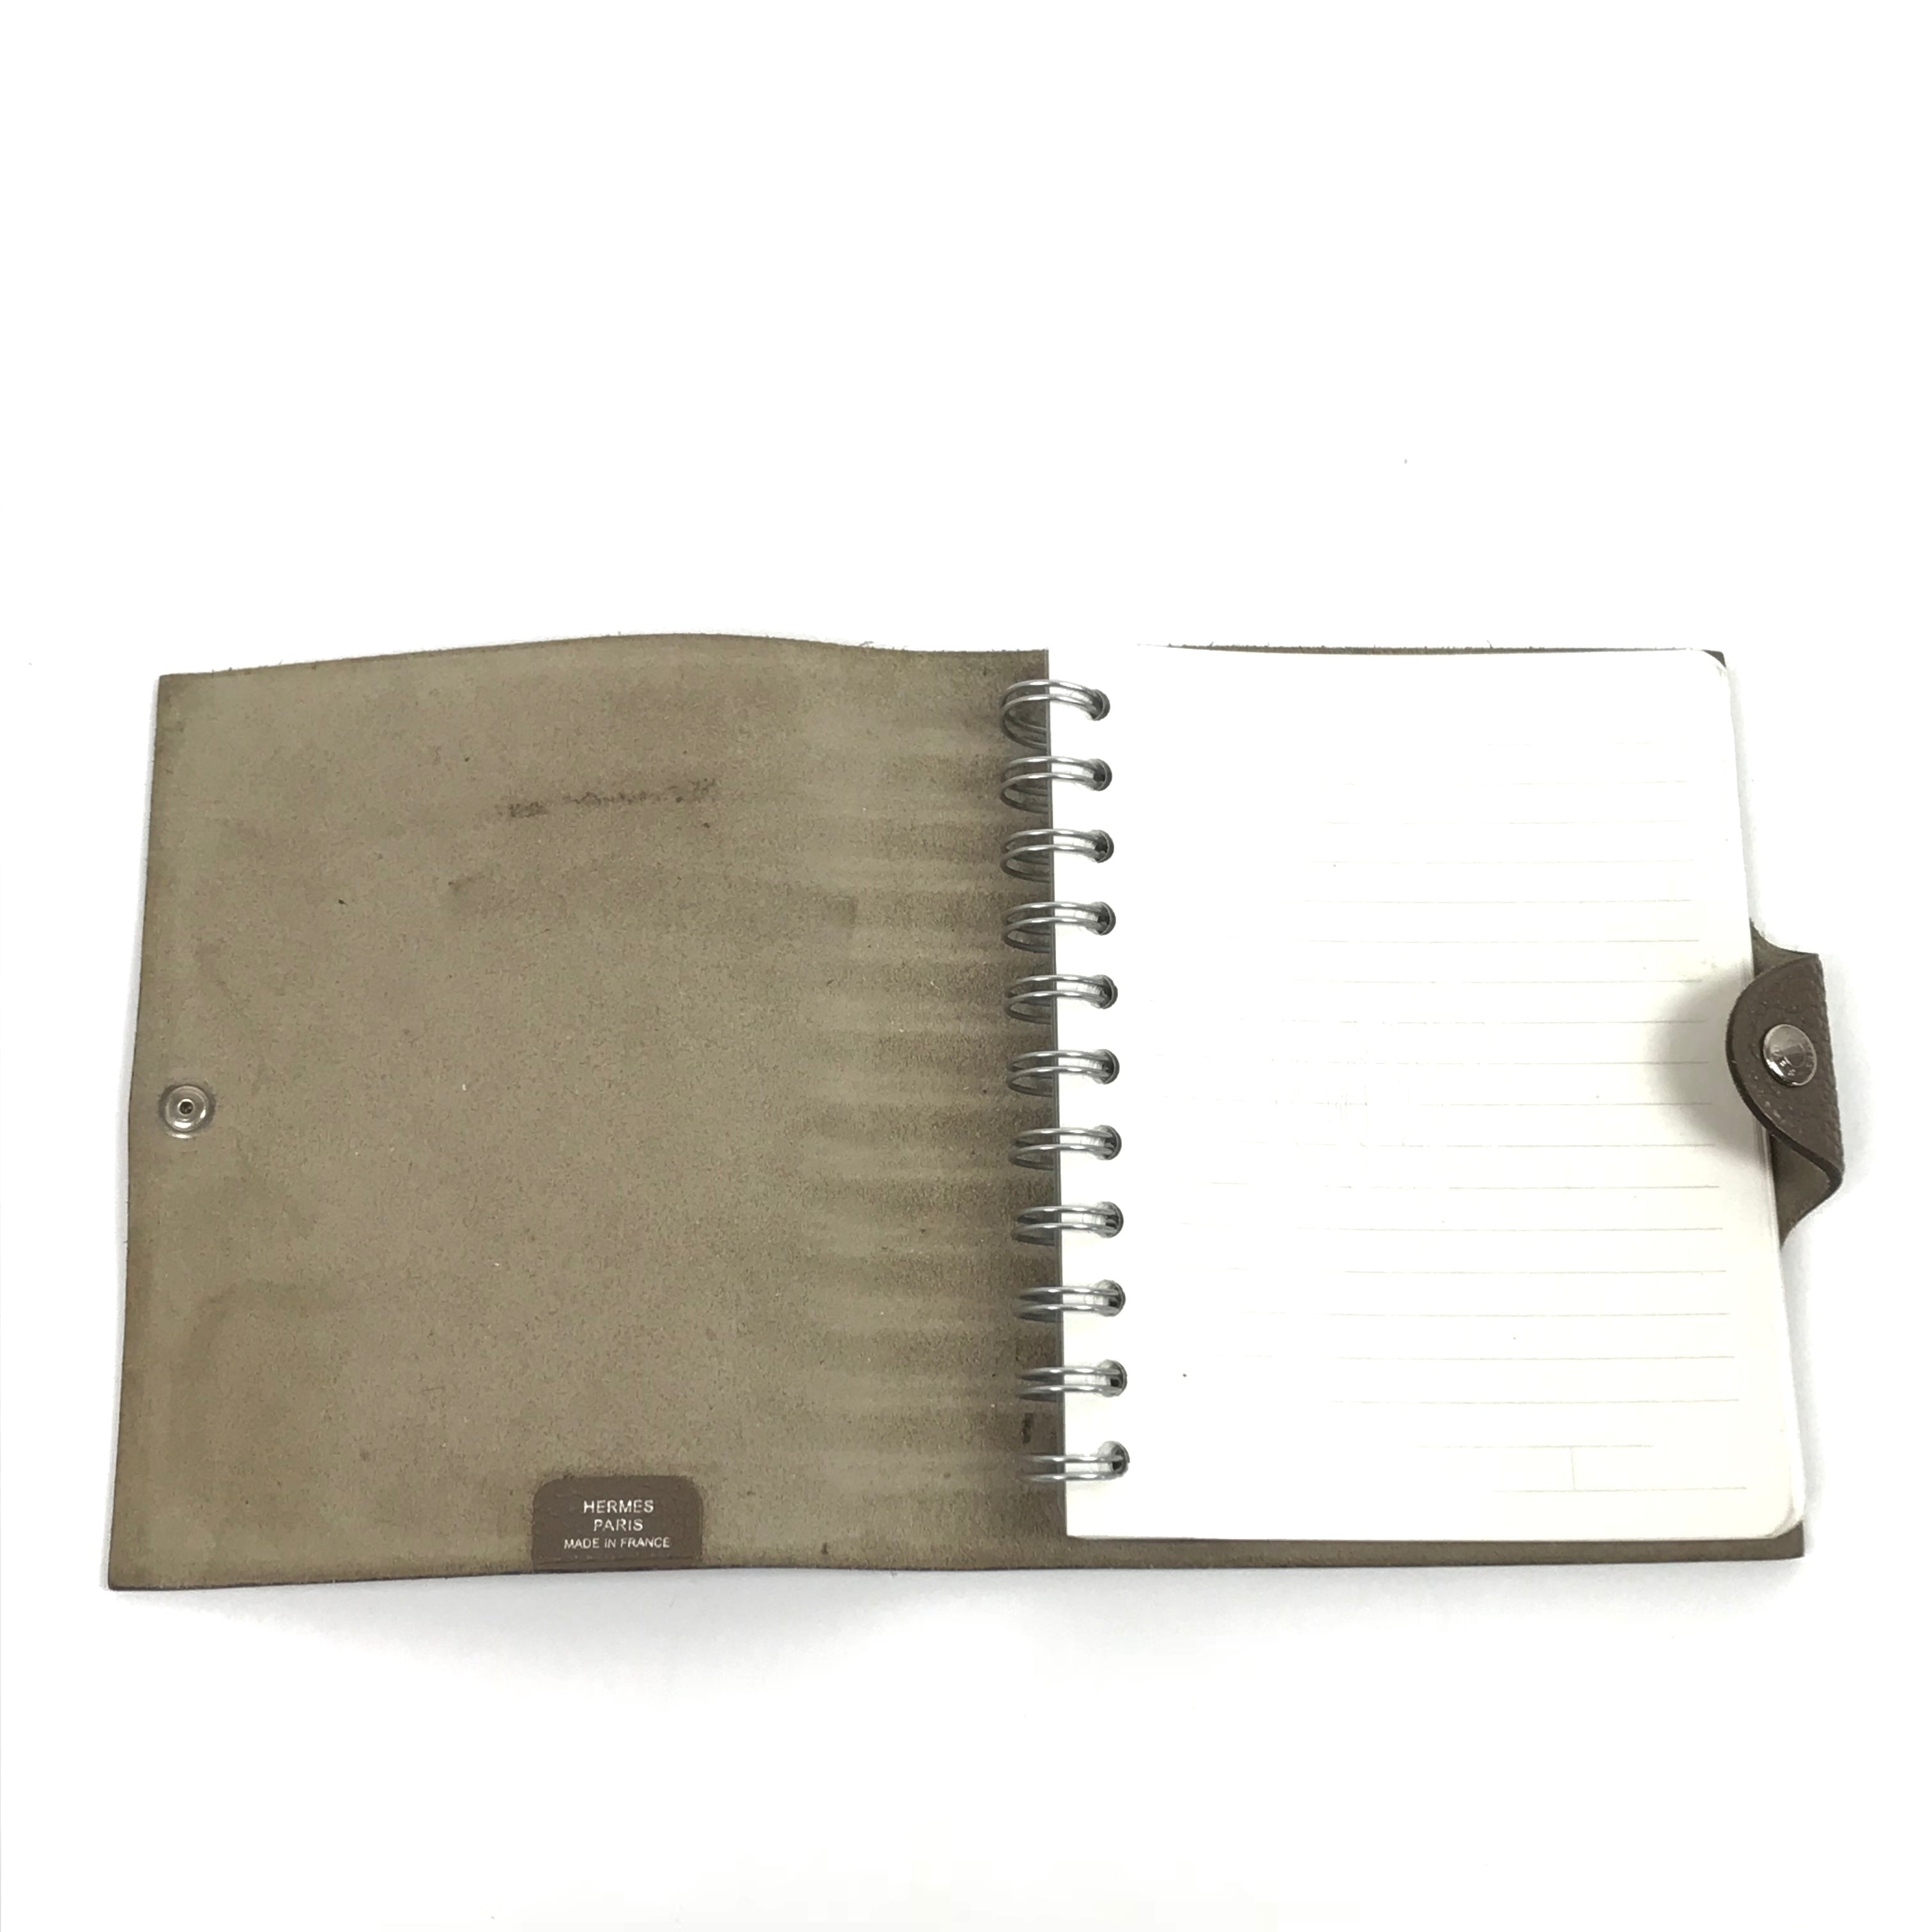 HERMES Ulysse Notebook Cover Taupe PM - RESERVED